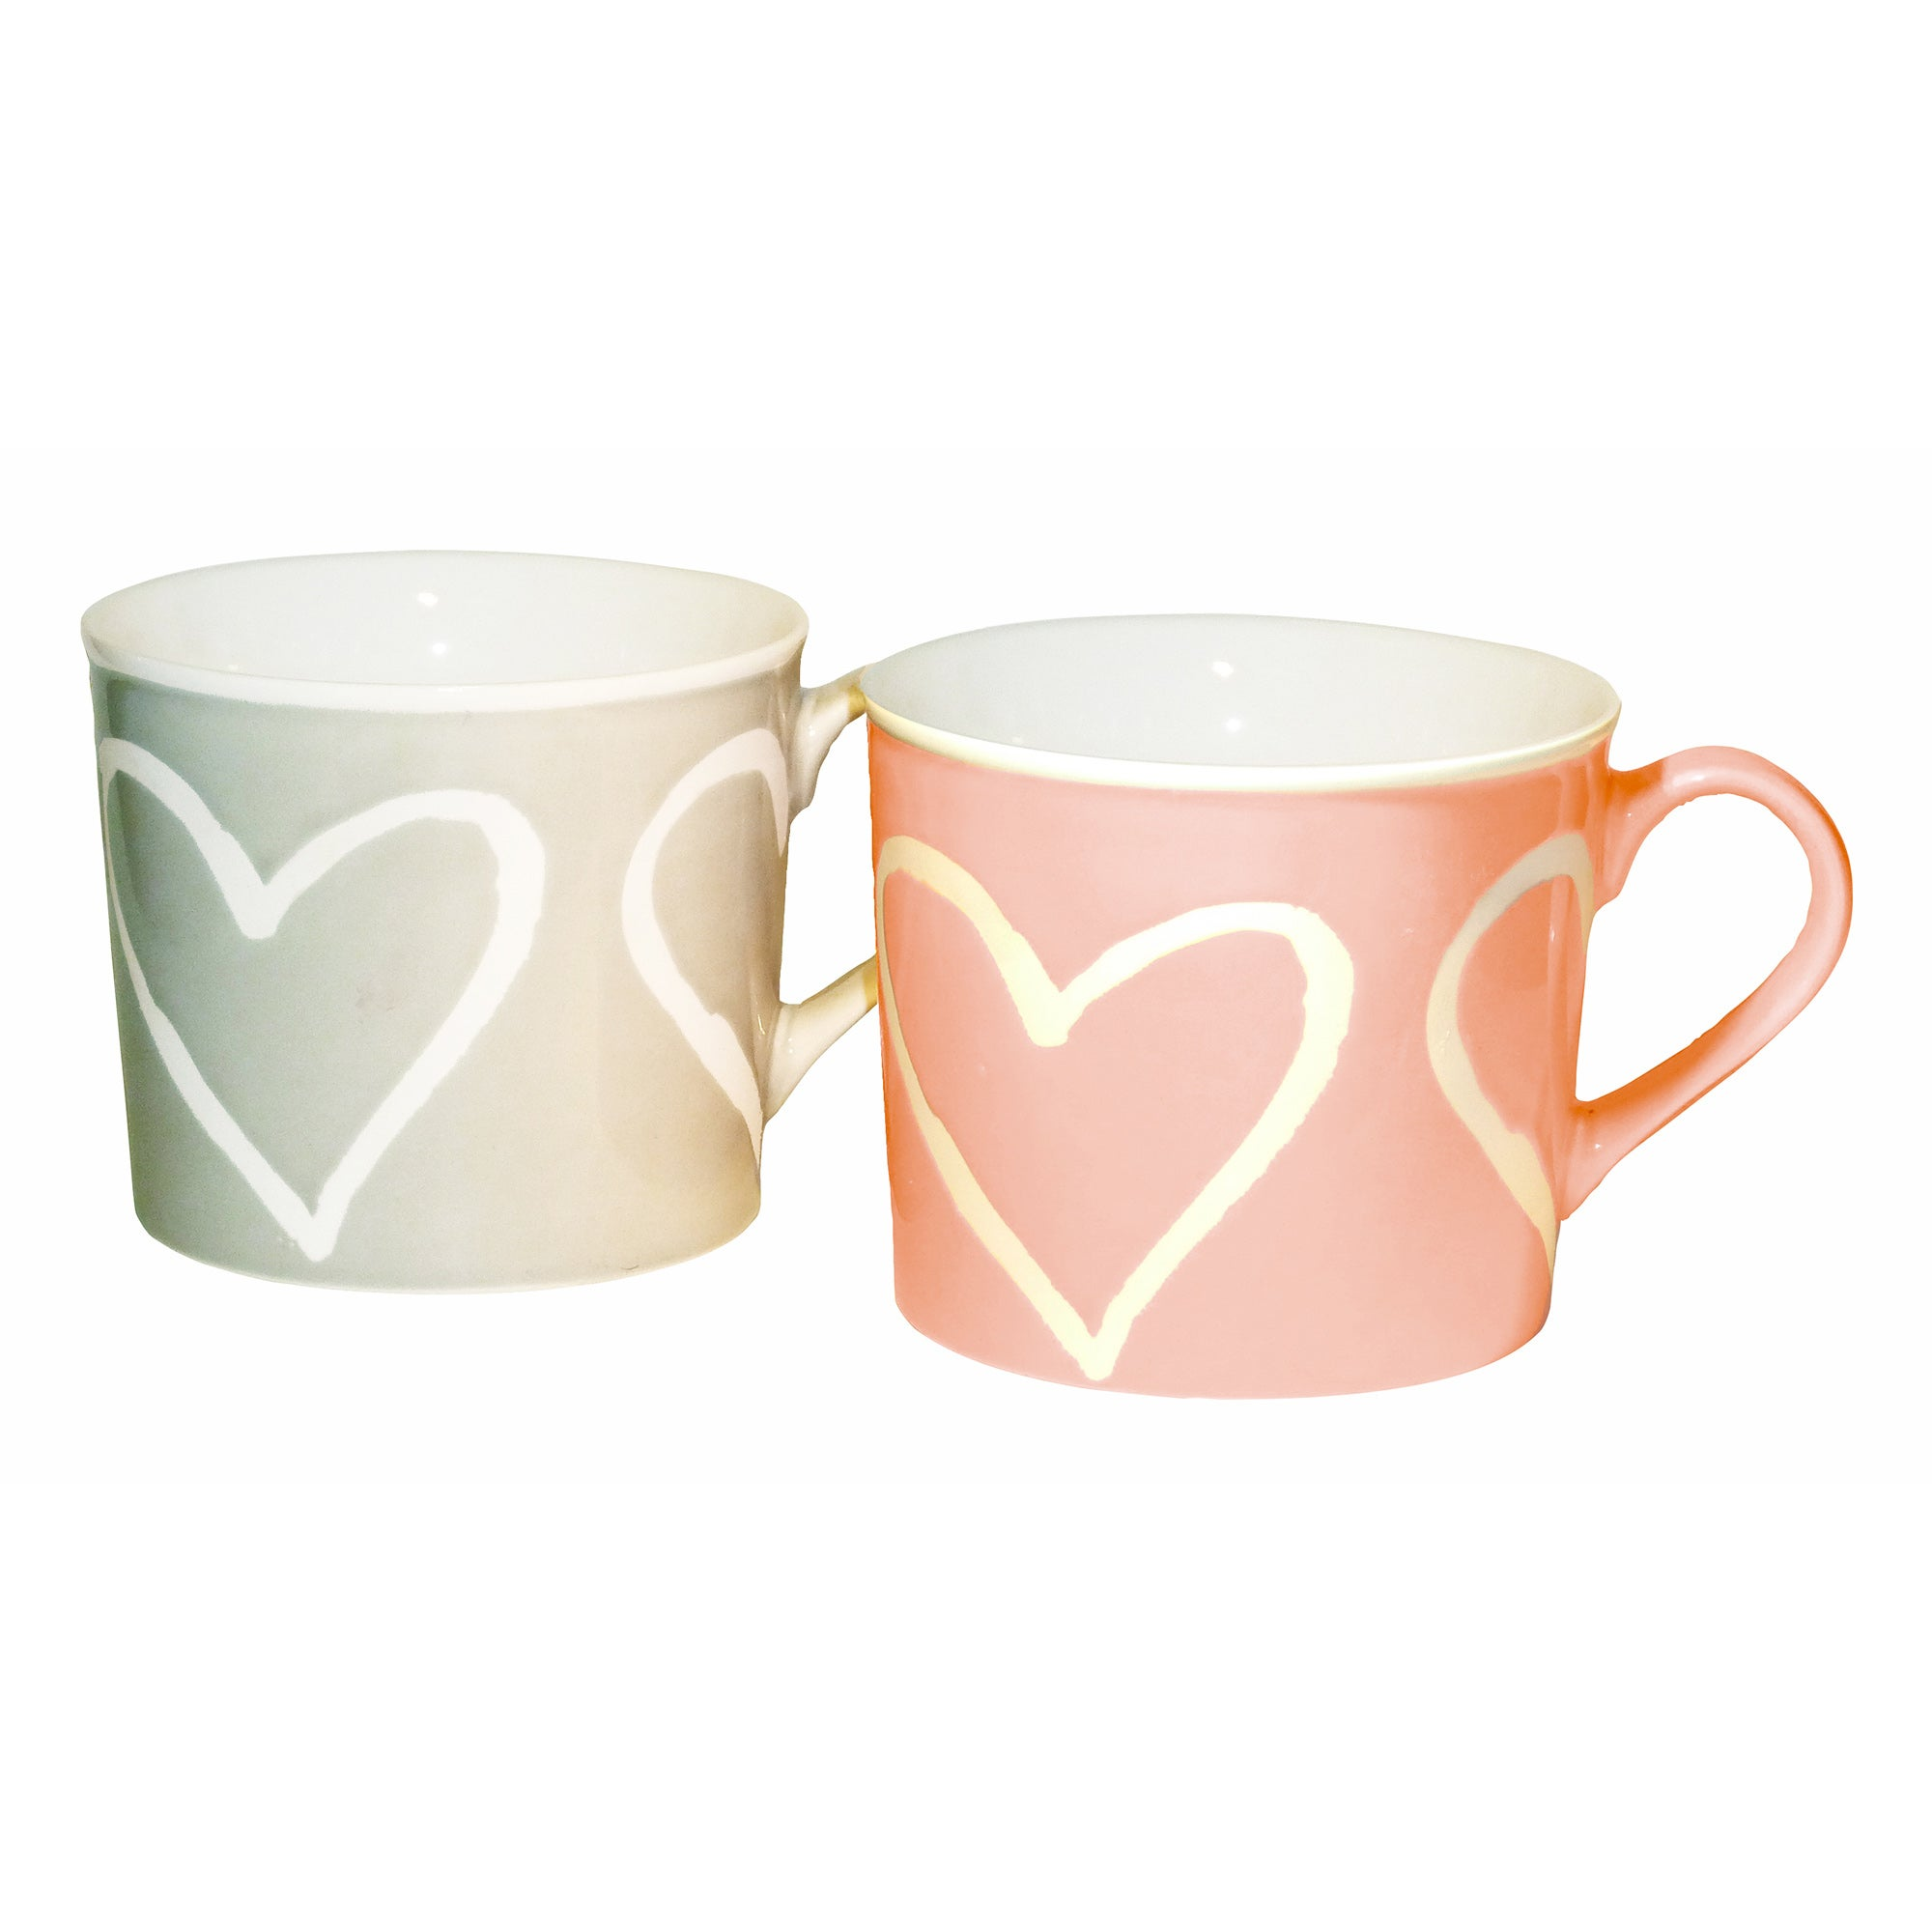 Image of 2 Hearts Mugs Assorted